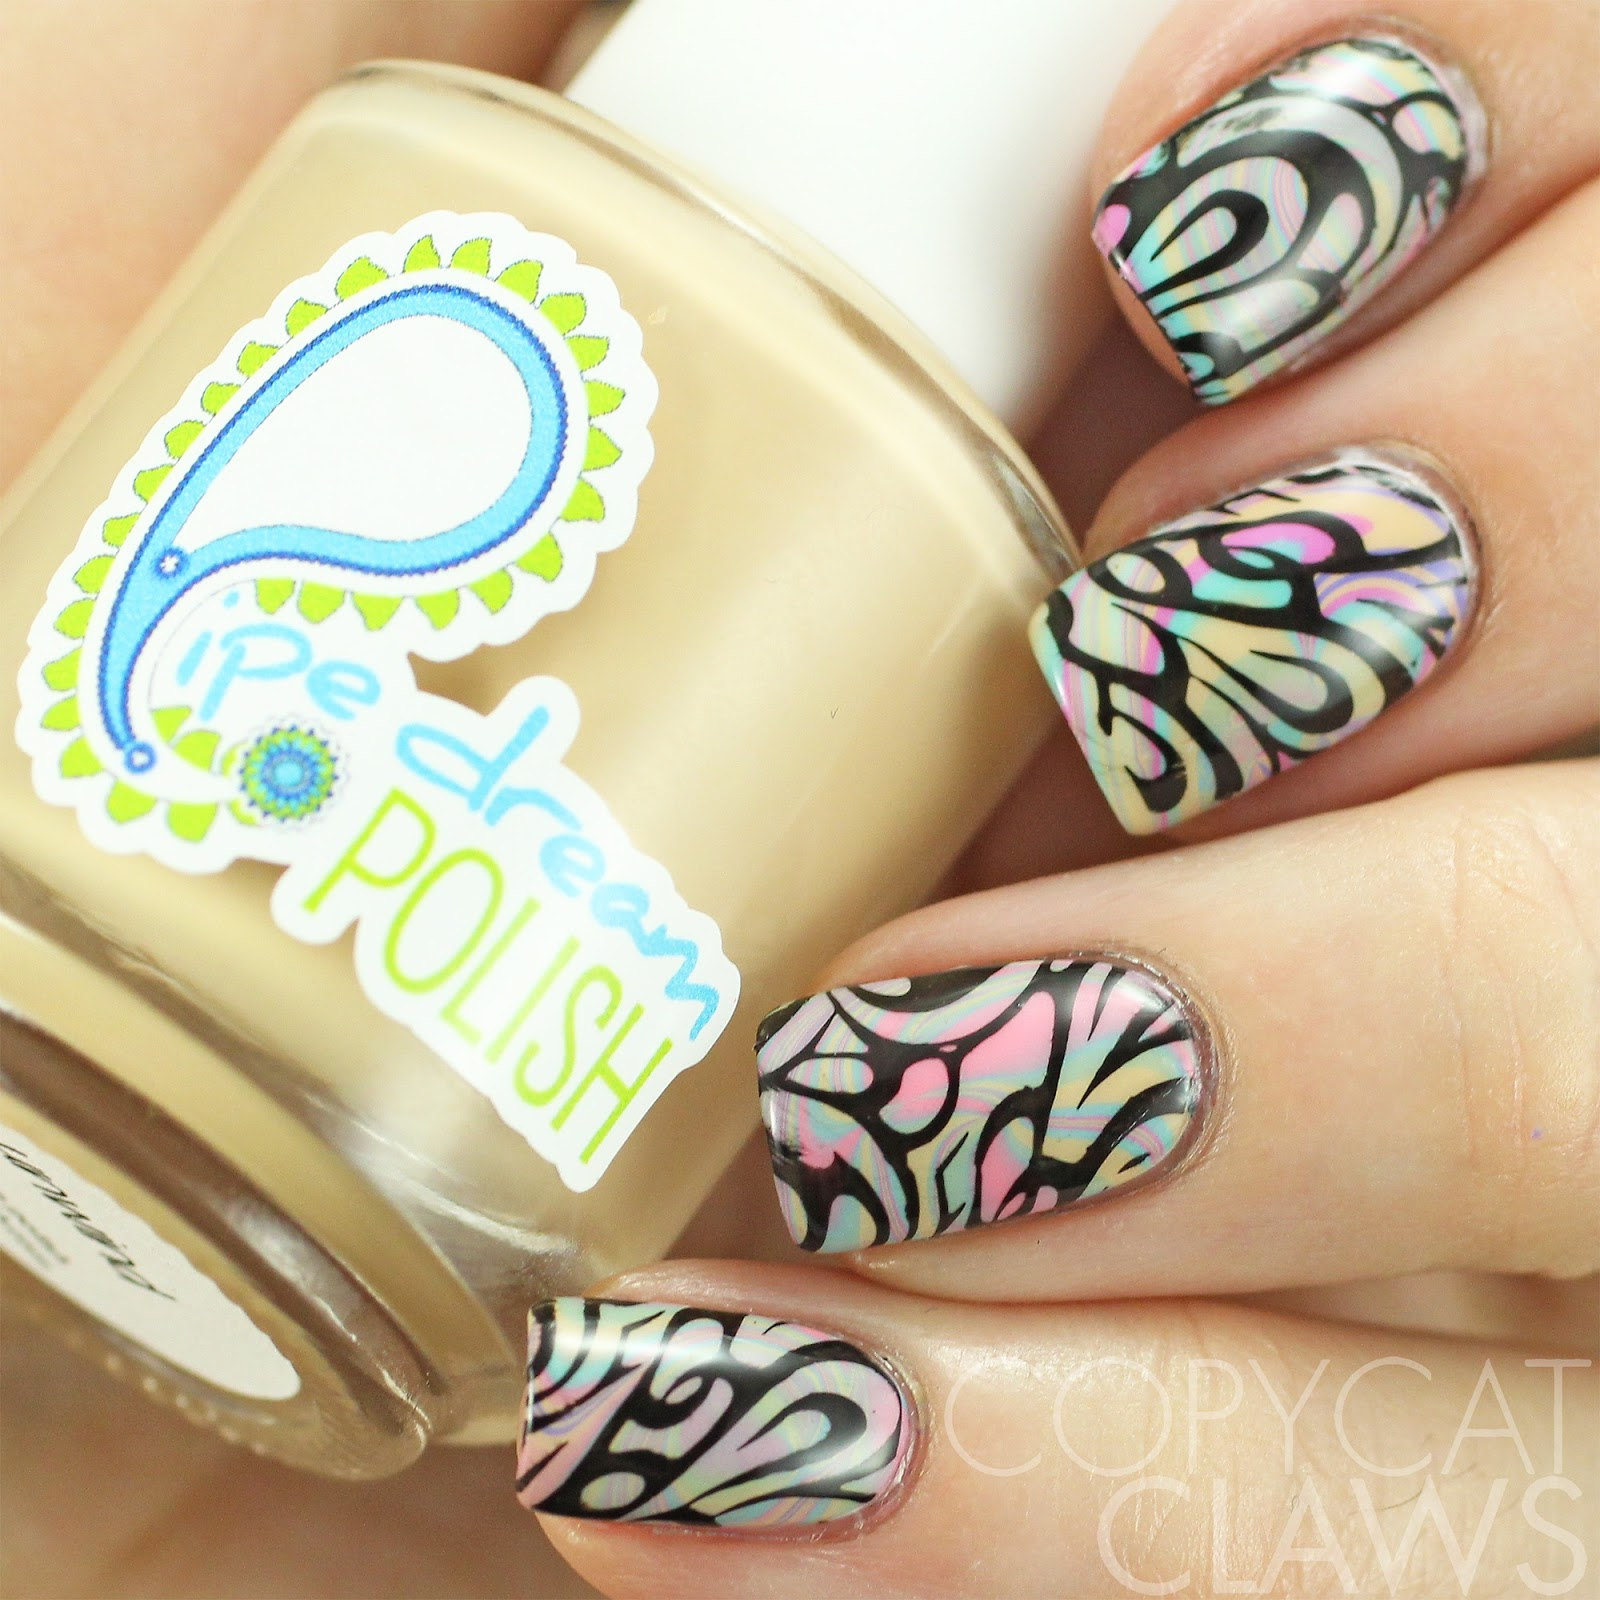 Copycat Claws: 40 Great Nail Art Ideas - Nude + Color